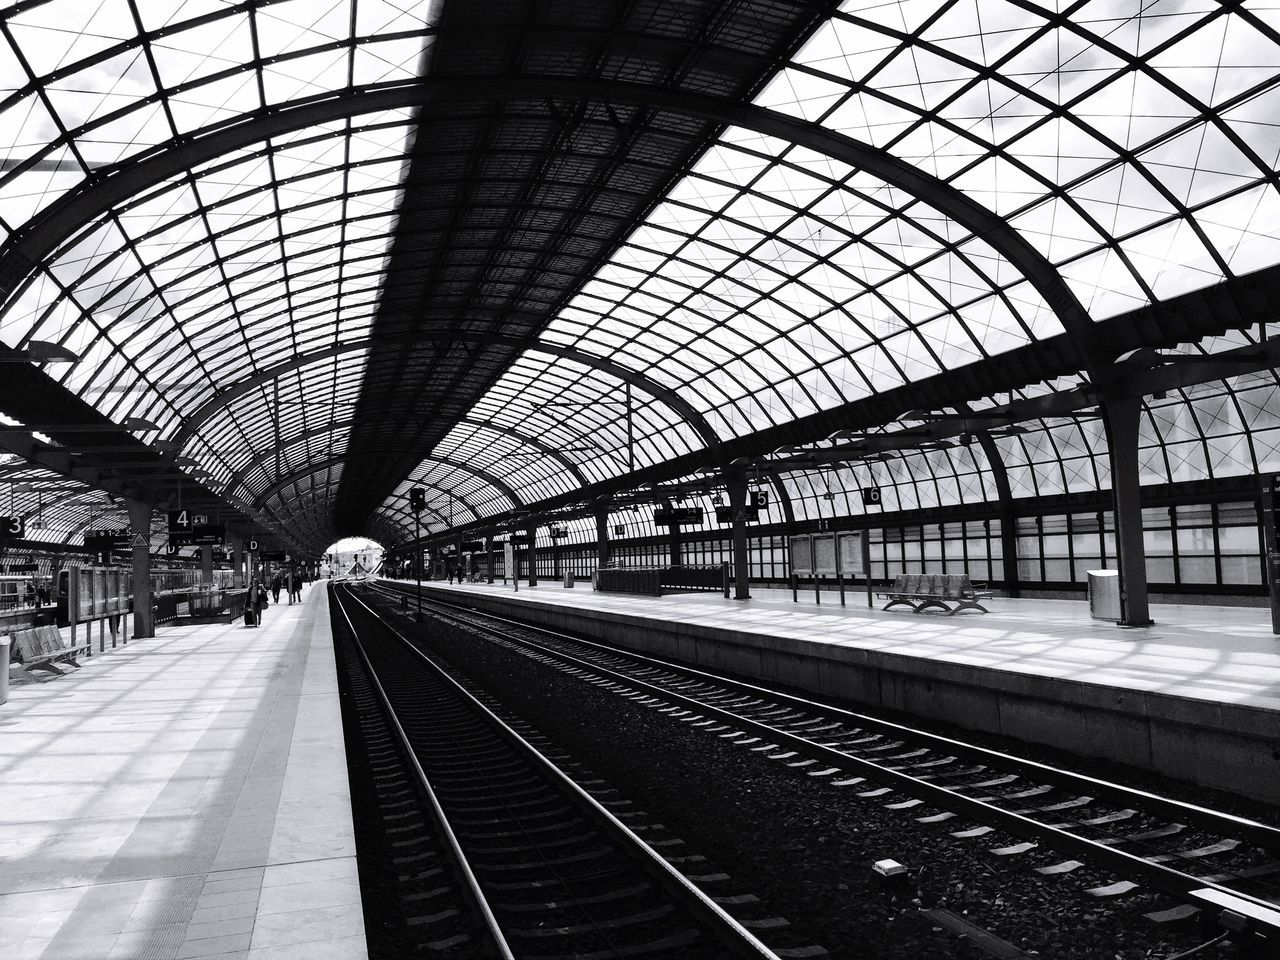 Spandauisokay Traveling Tranquil Scene Trainstation Shadows & Light Taking Photos Blackandwhite Photography